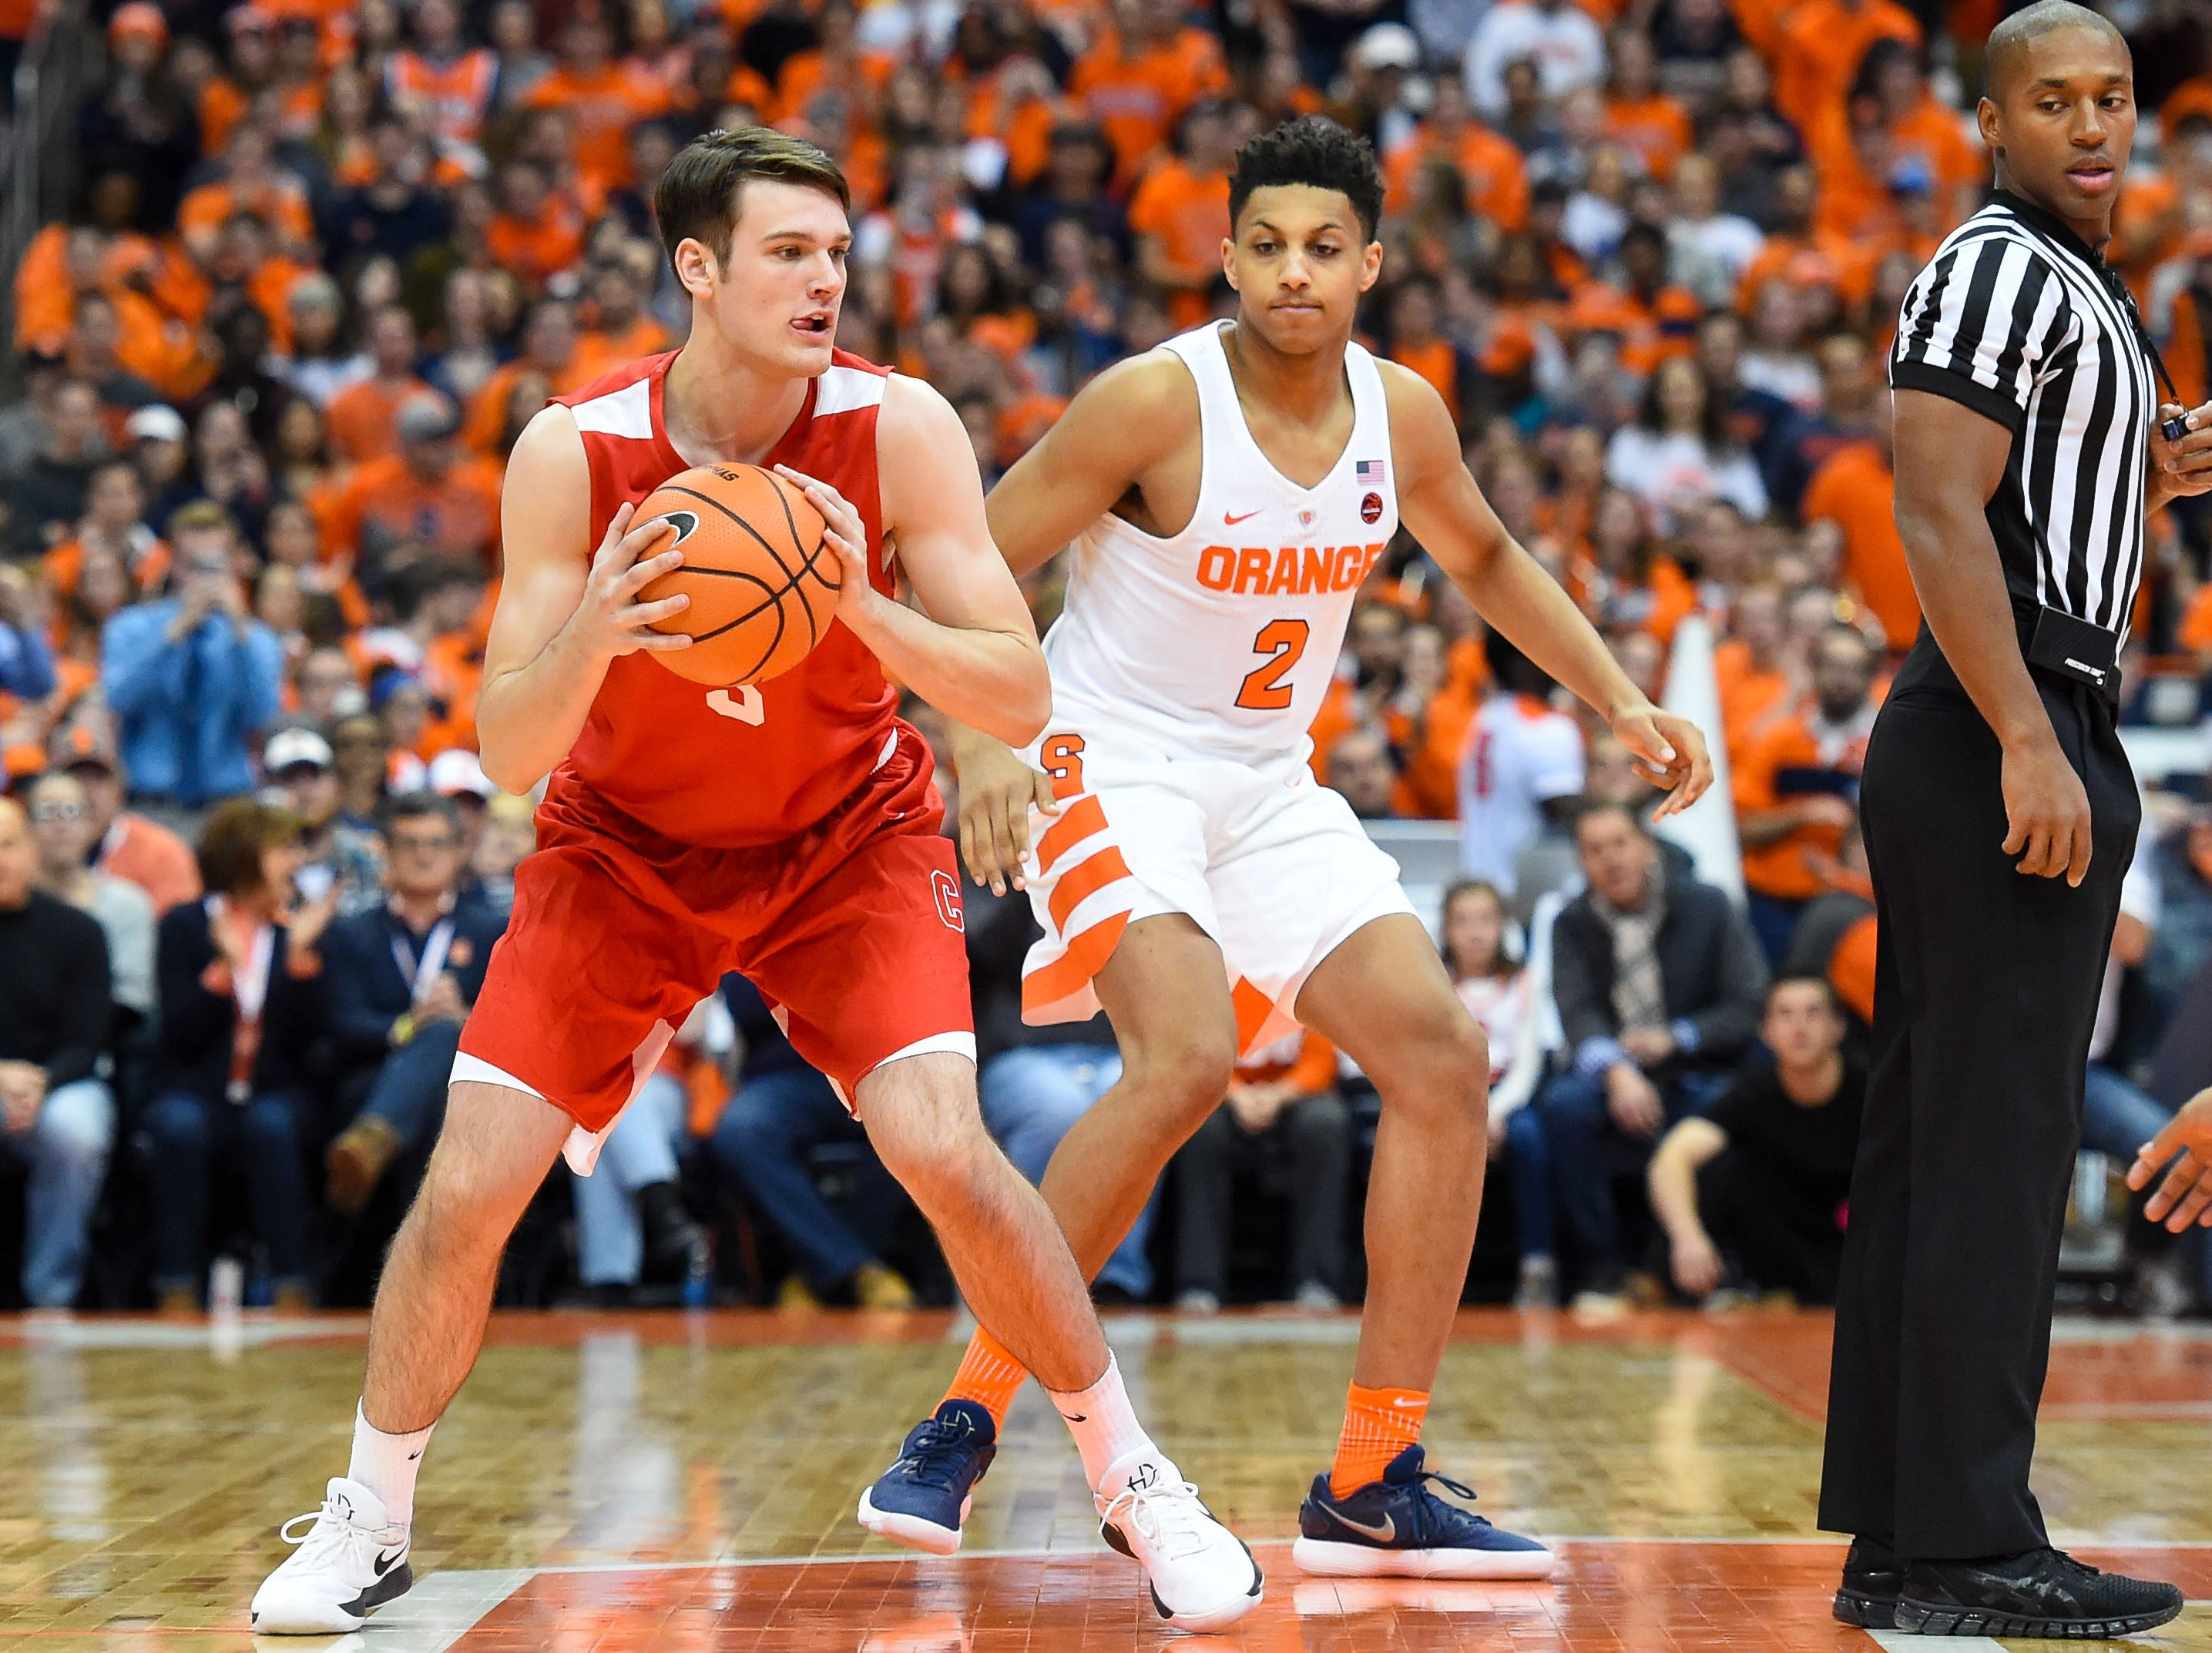 Nov 10, 2017; Syracuse, NY, USA; Cornell Big Red forward Jimmy Boeheim (3) controls the opening tip as Syracuse Orange forward Matthew Moyer (2) defends during the first half at the Carrier Dome. Mandatory Credit: Rich Barnes-USA TODAY Sports